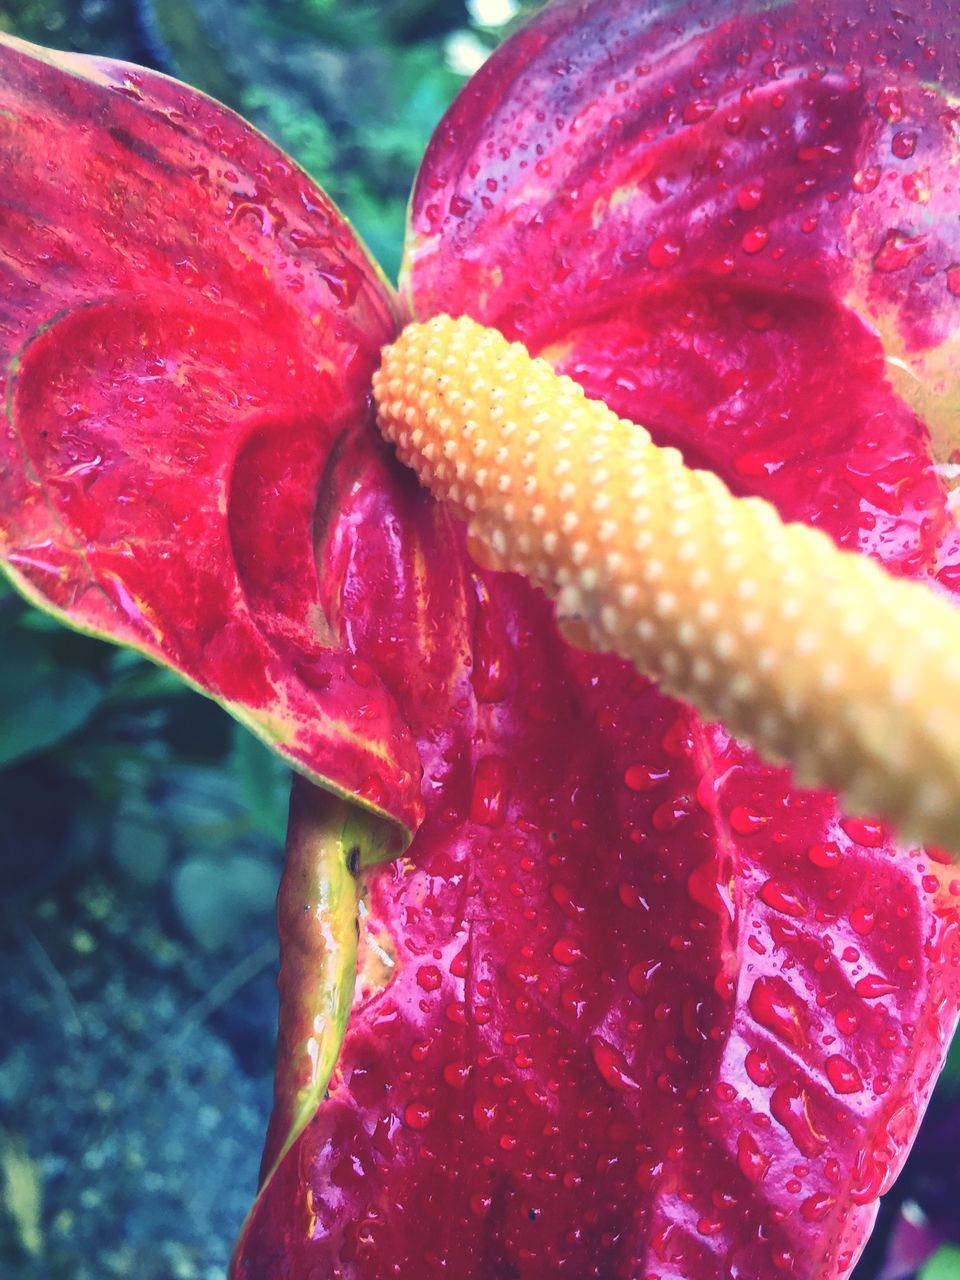 close-up, red, freshness, no people, plant, growth, nature, day, flowering plant, flower, beauty in nature, fragility, vulnerability, inflorescence, water, focus on foreground, drop, flower head, wet, outdoors, soft focus, dew